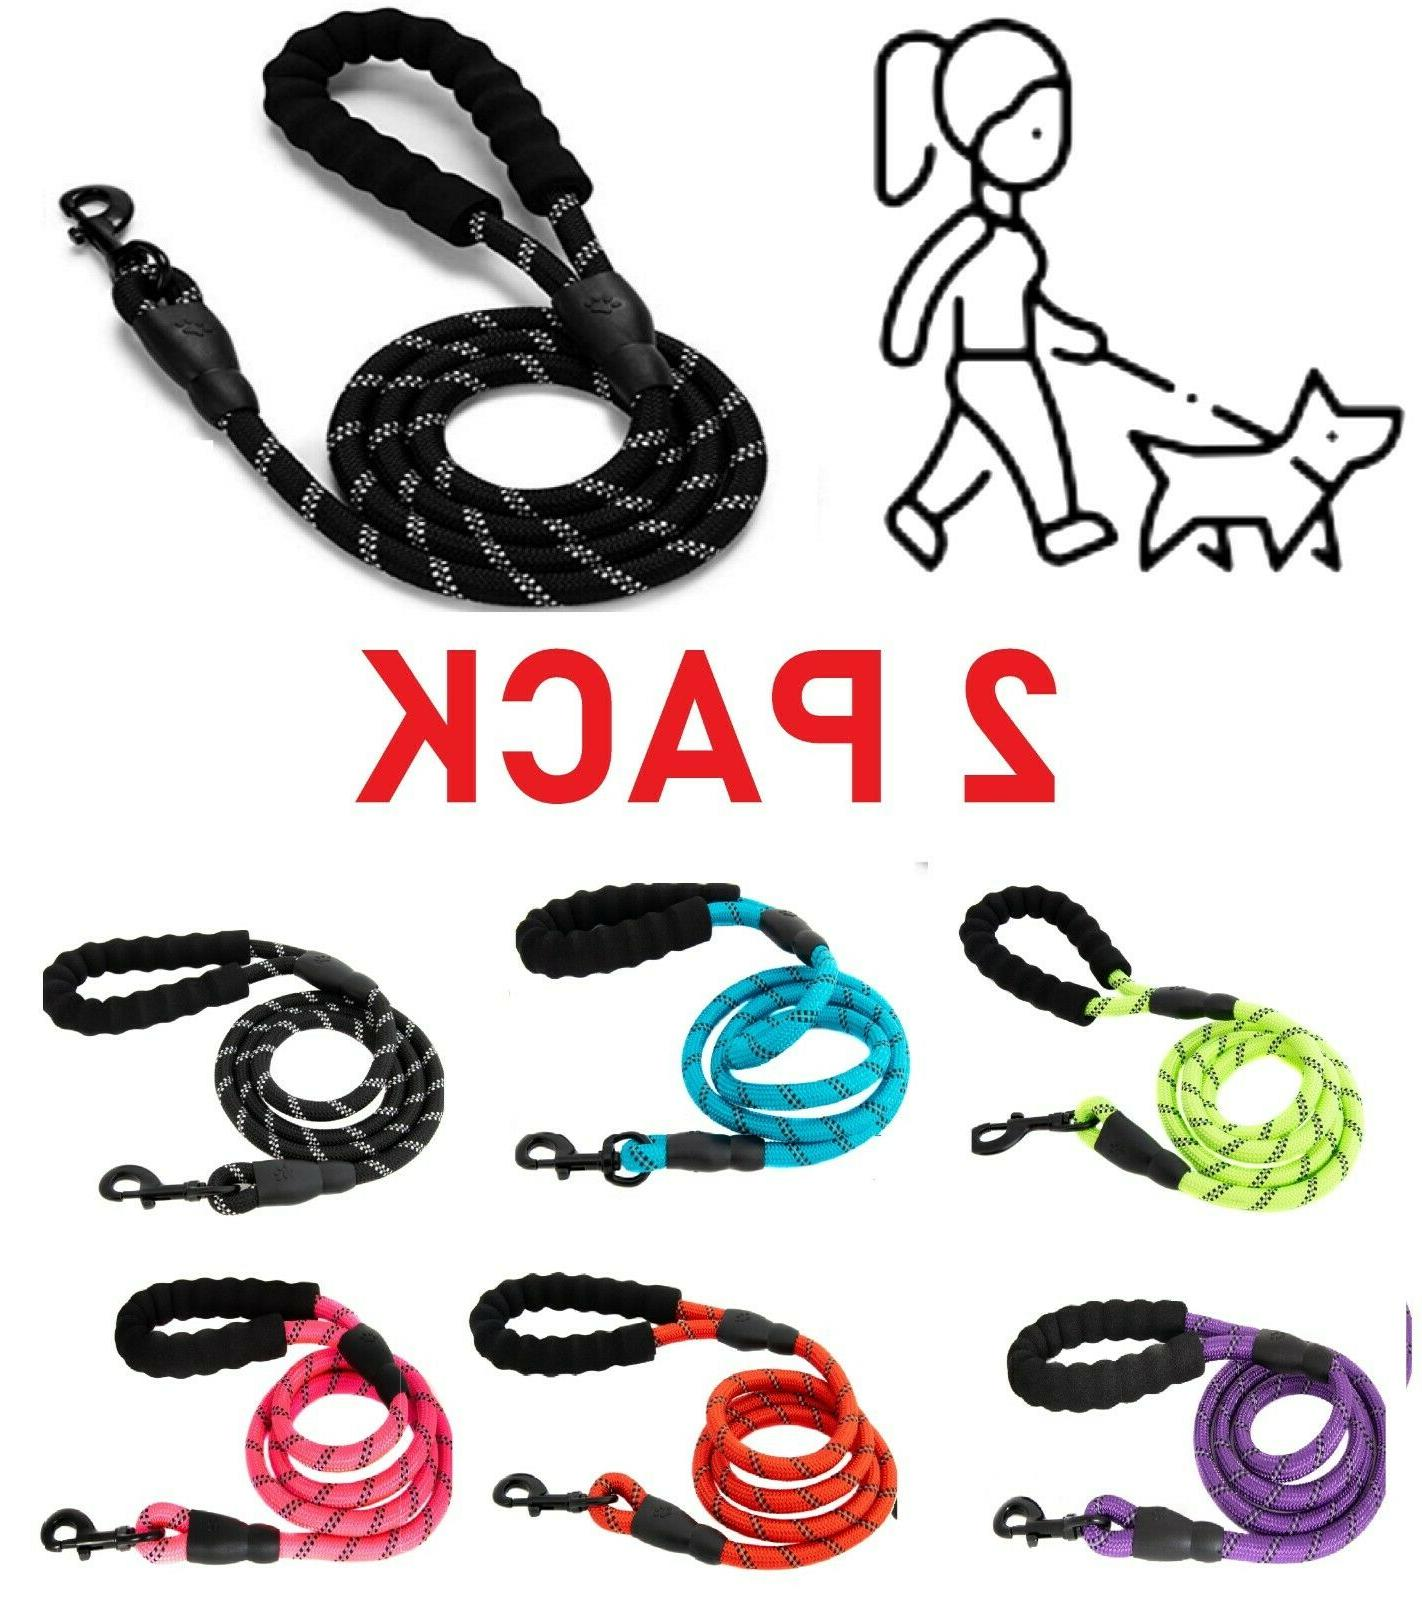 2pack 5ft service dog rope leash lead